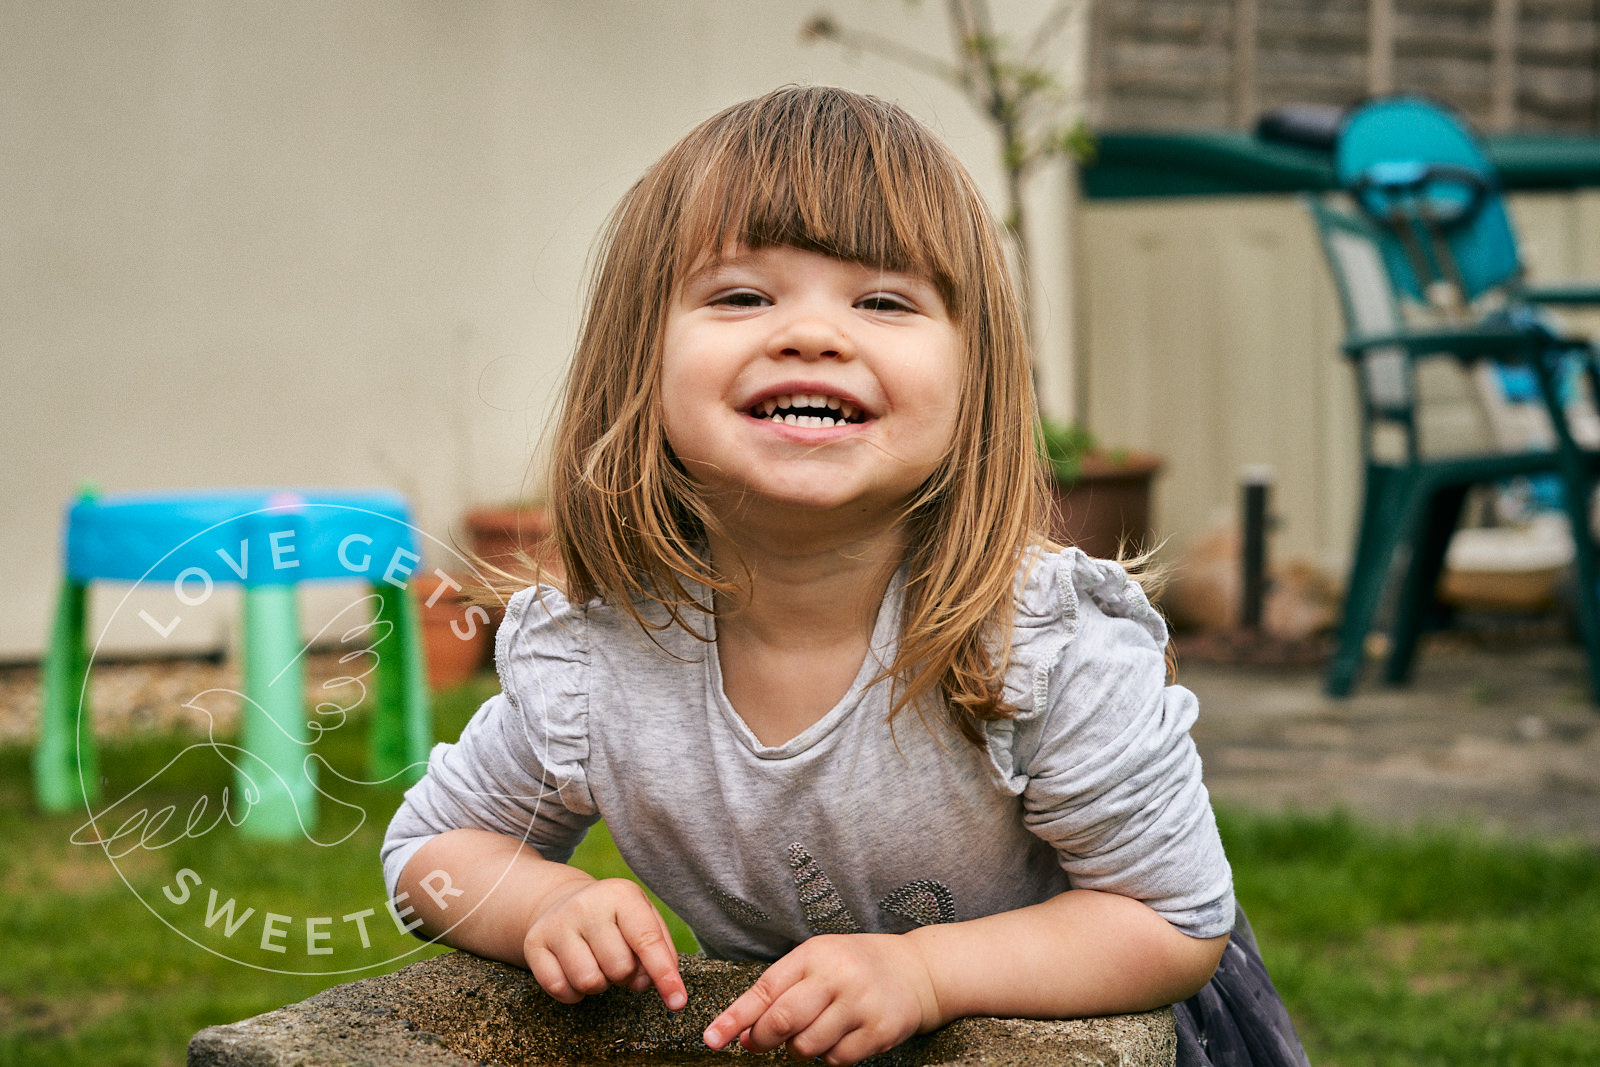 little girl grins at camera in fun family photo